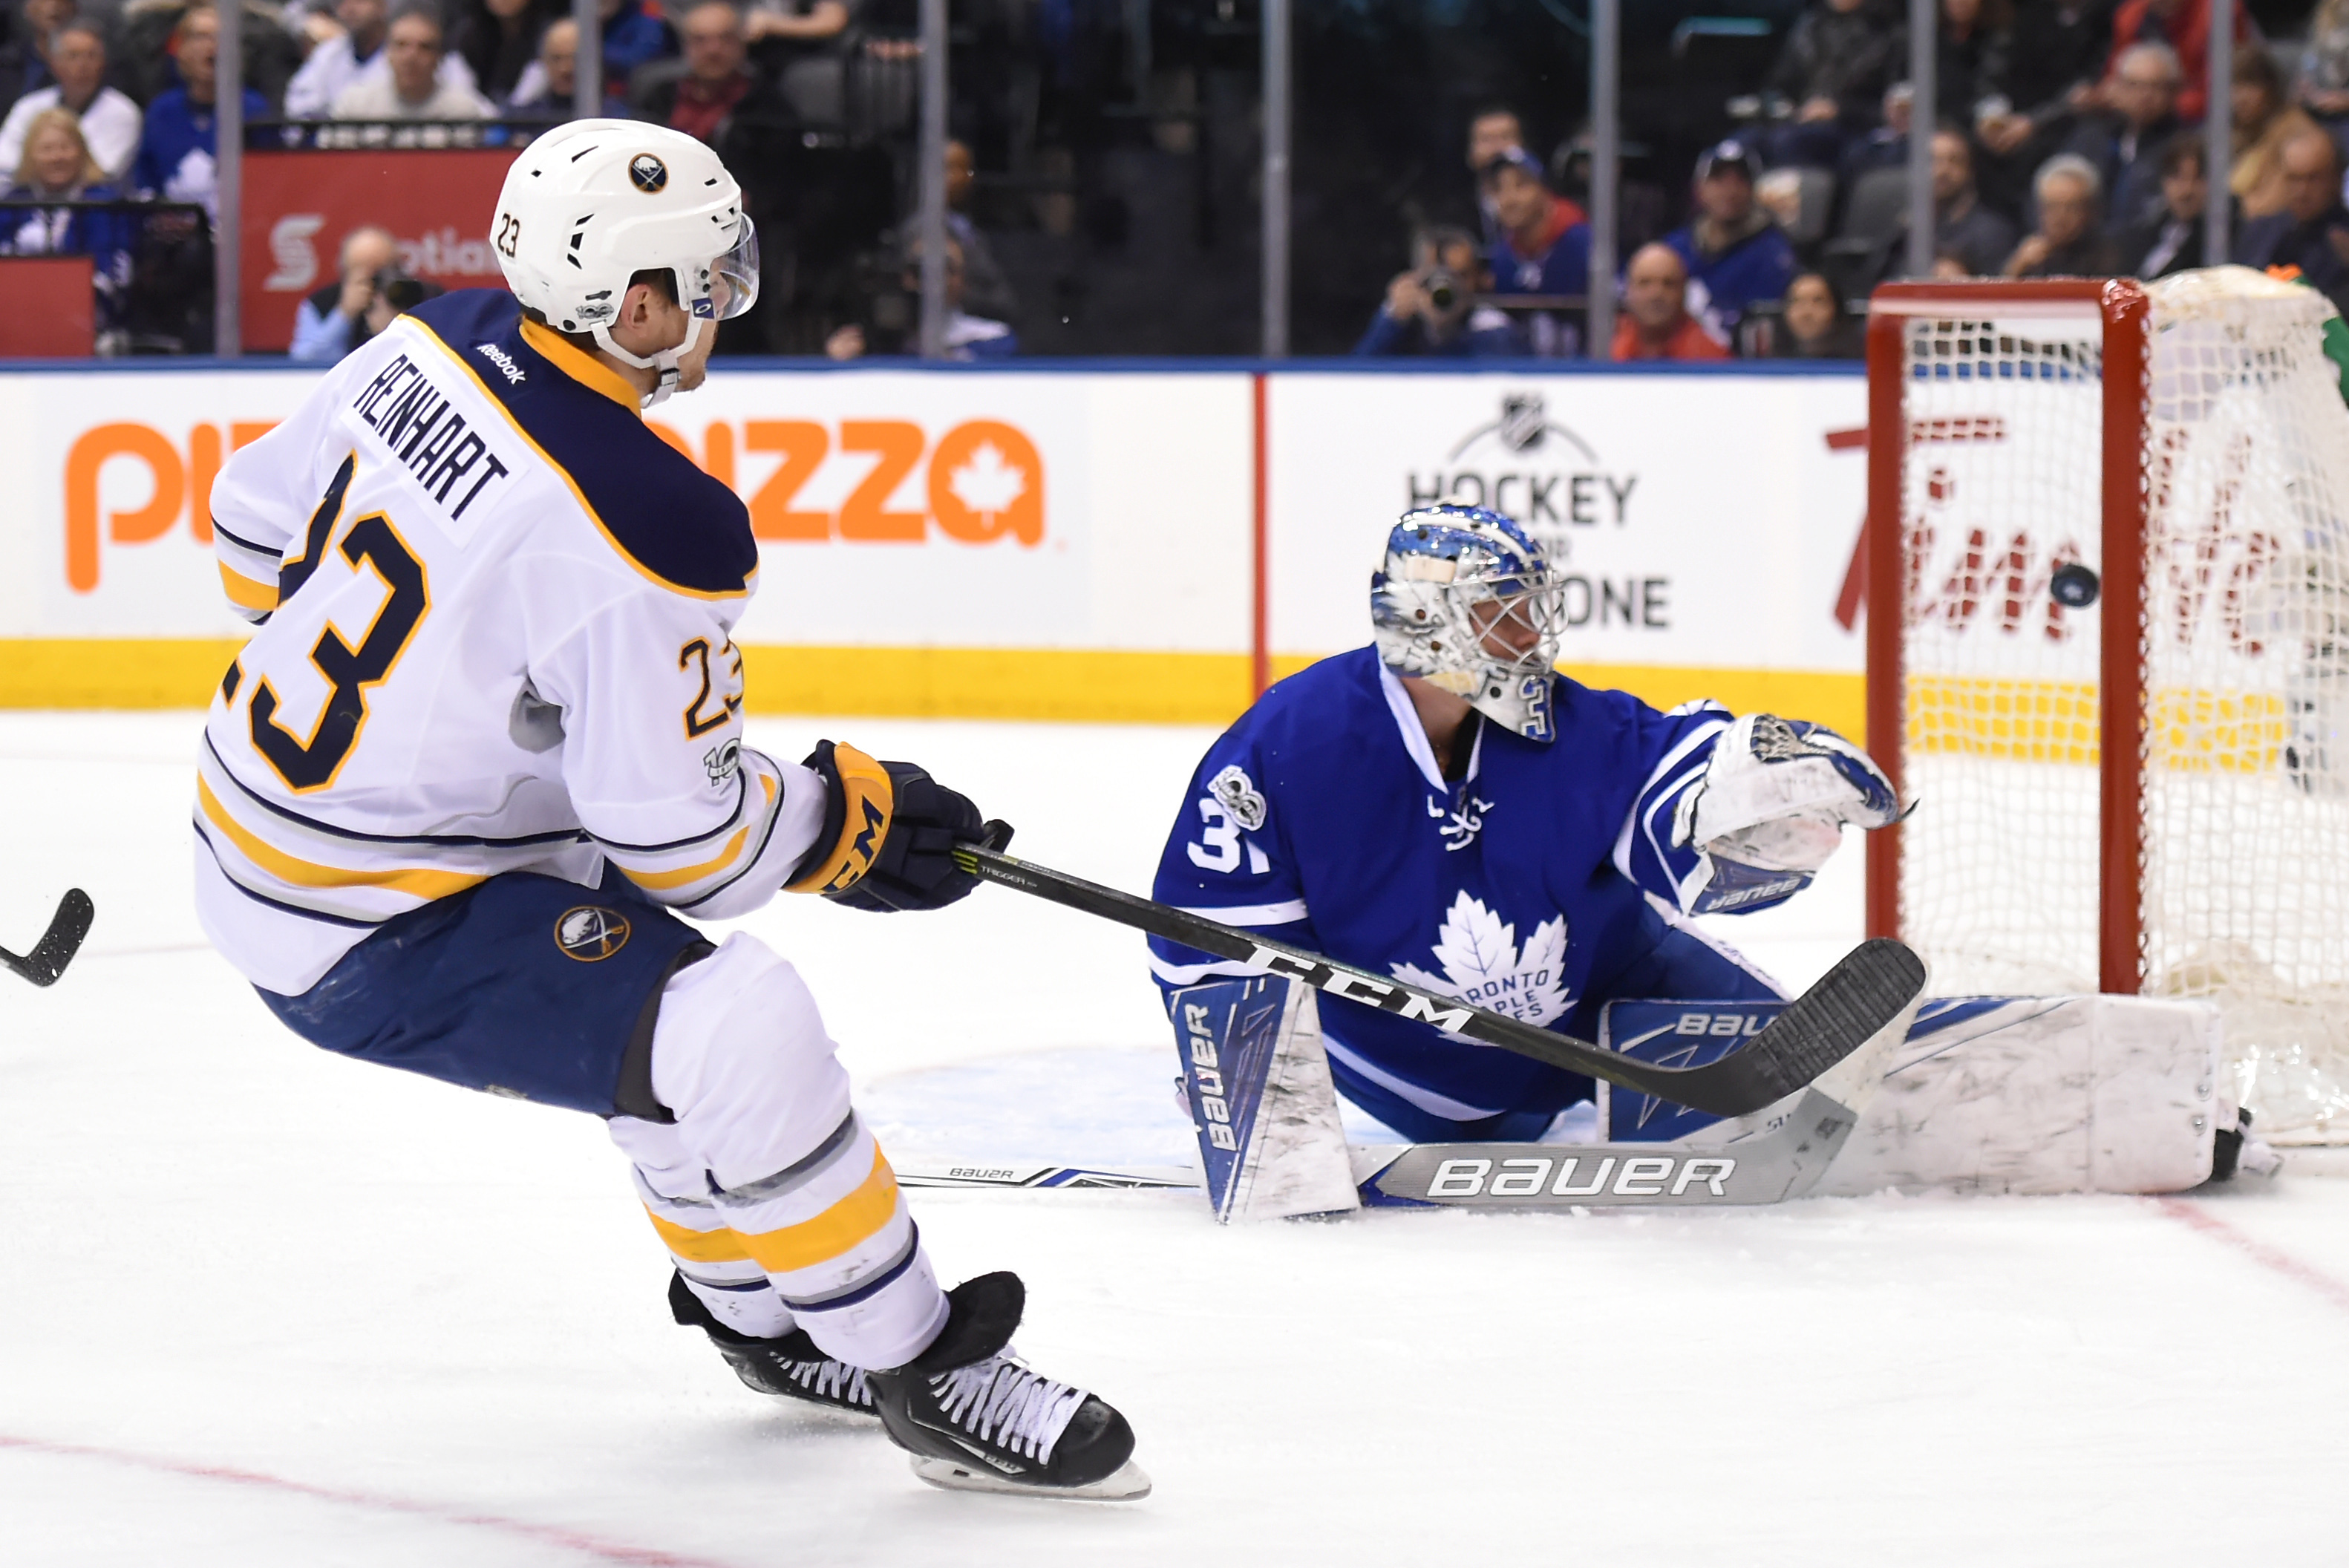 The Sabres' Sam Reinhart beats Toronto's Frederik Andersen for his 12th goal Saturday. (USA Today Sports)